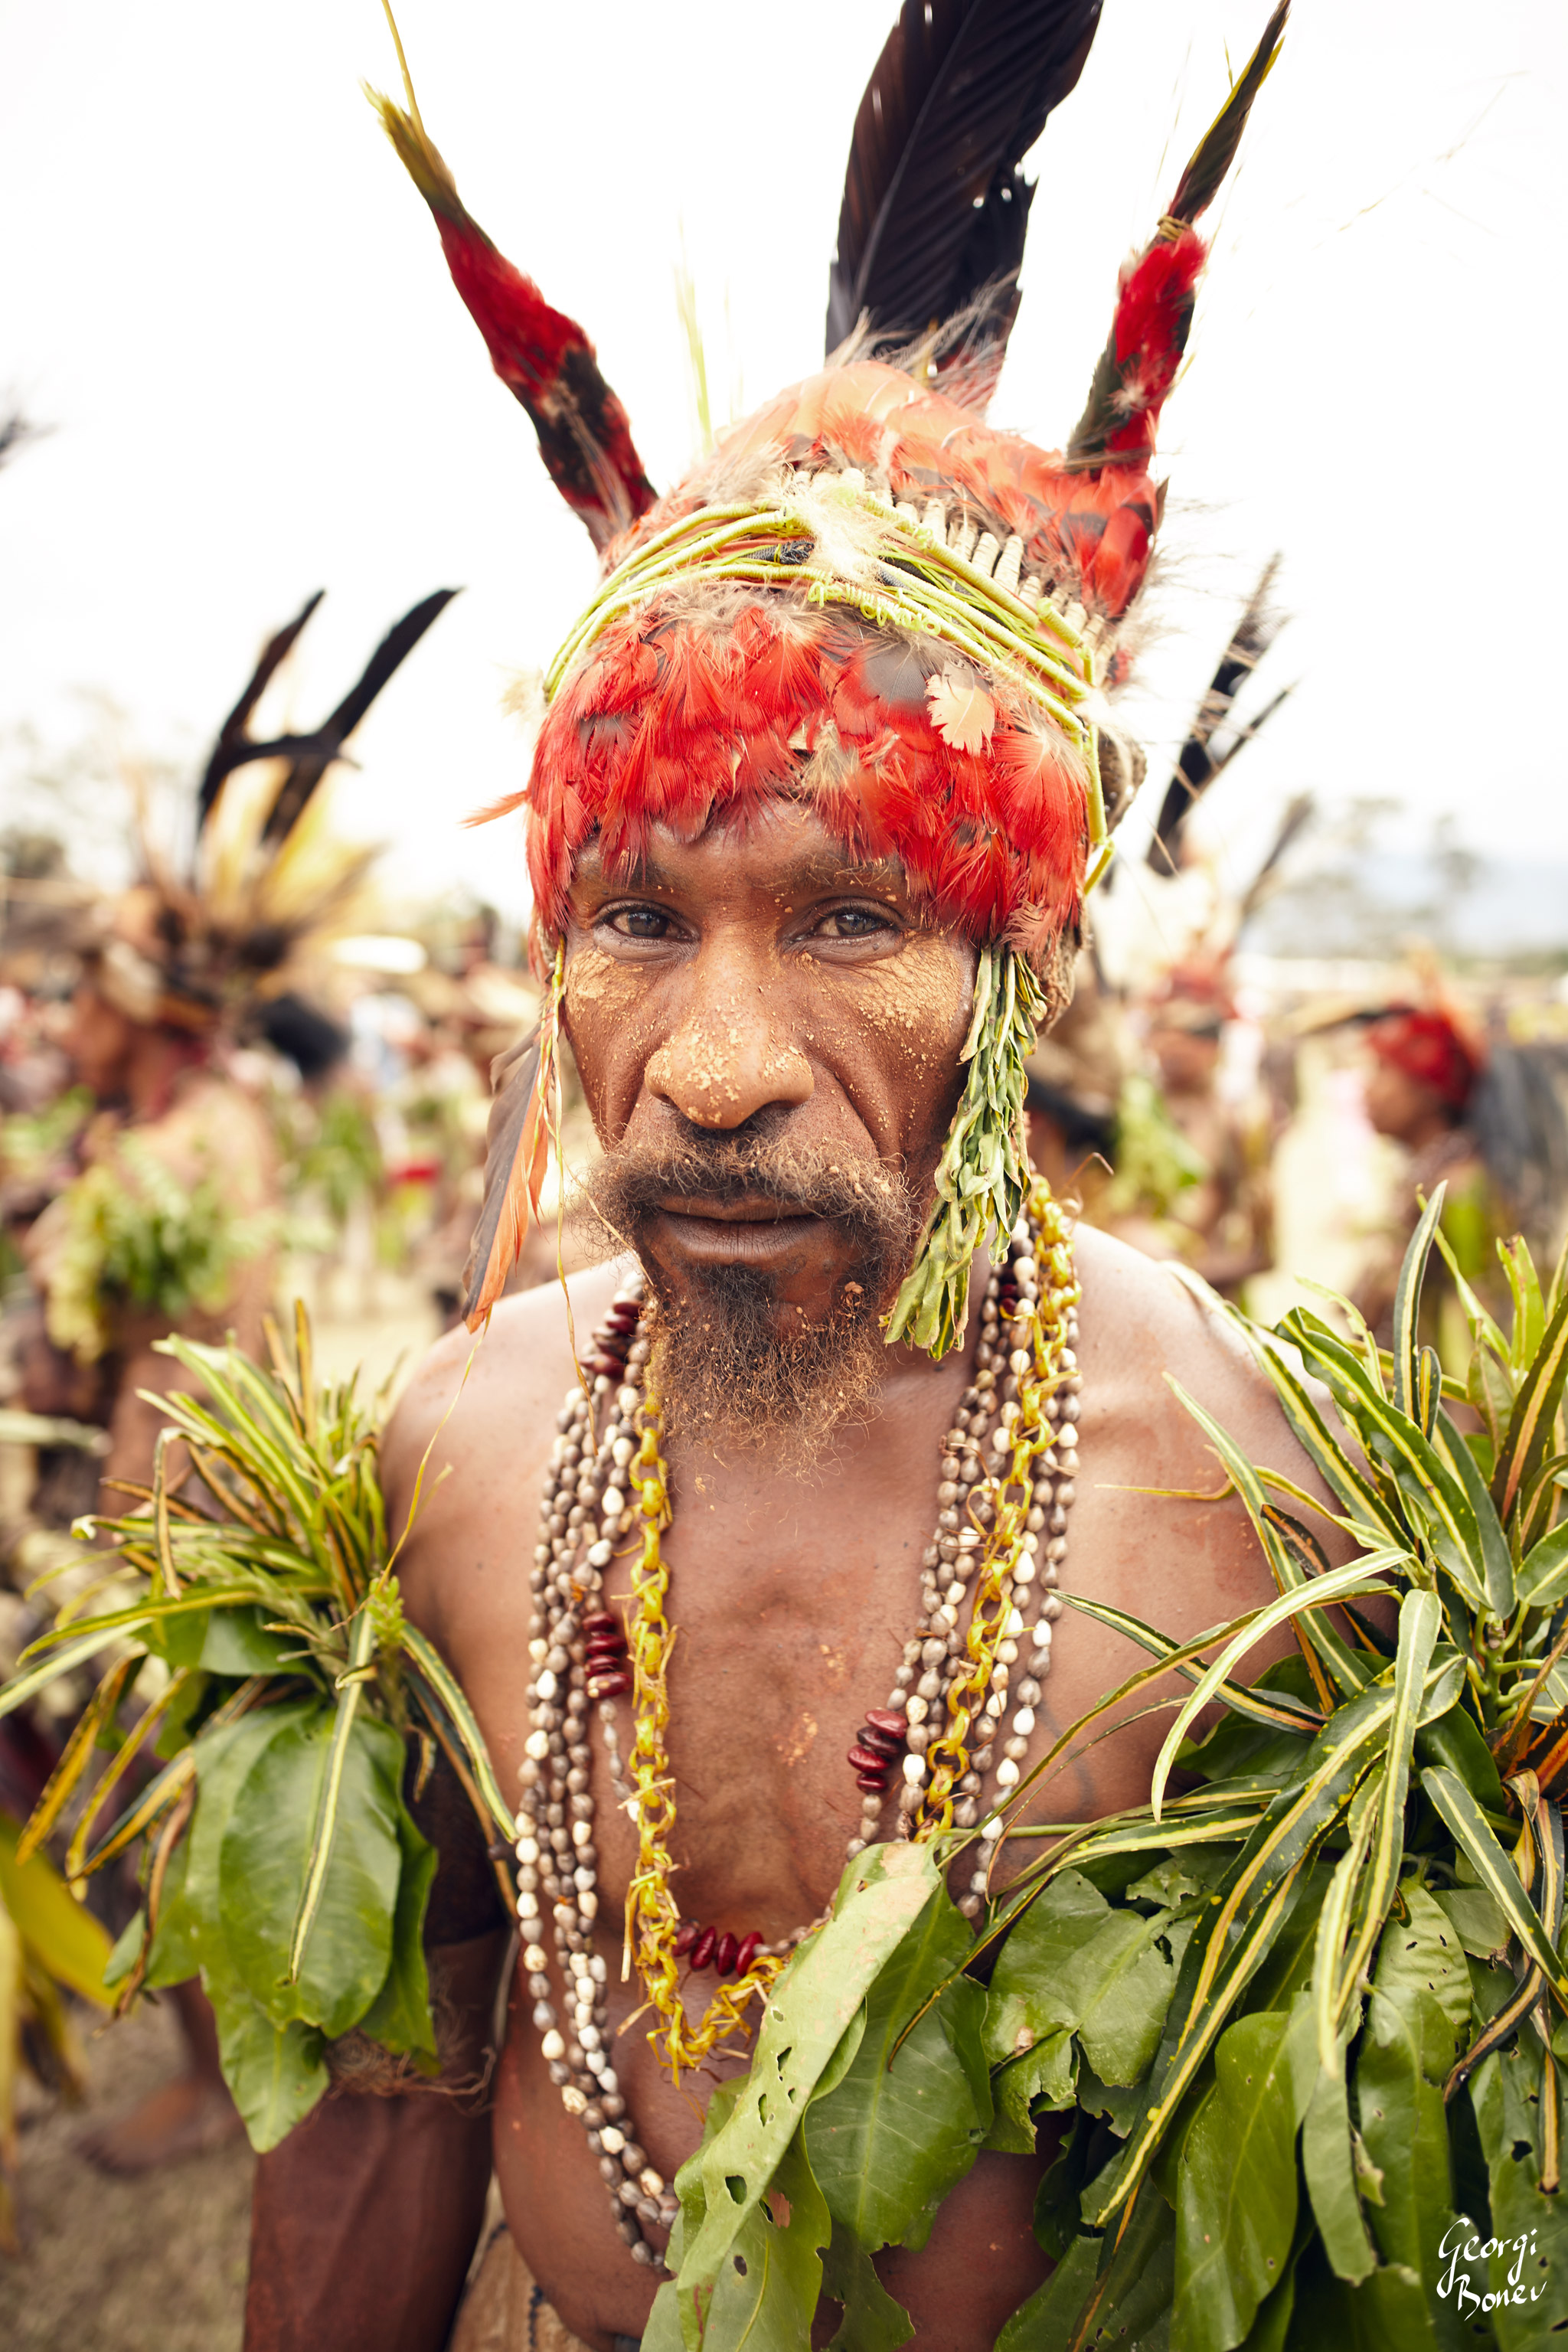 ATRIGU WARRIOR IS VERY SUSPICIOUS ABOUT NEW COMMERS, PAPUA NEW GUINEA